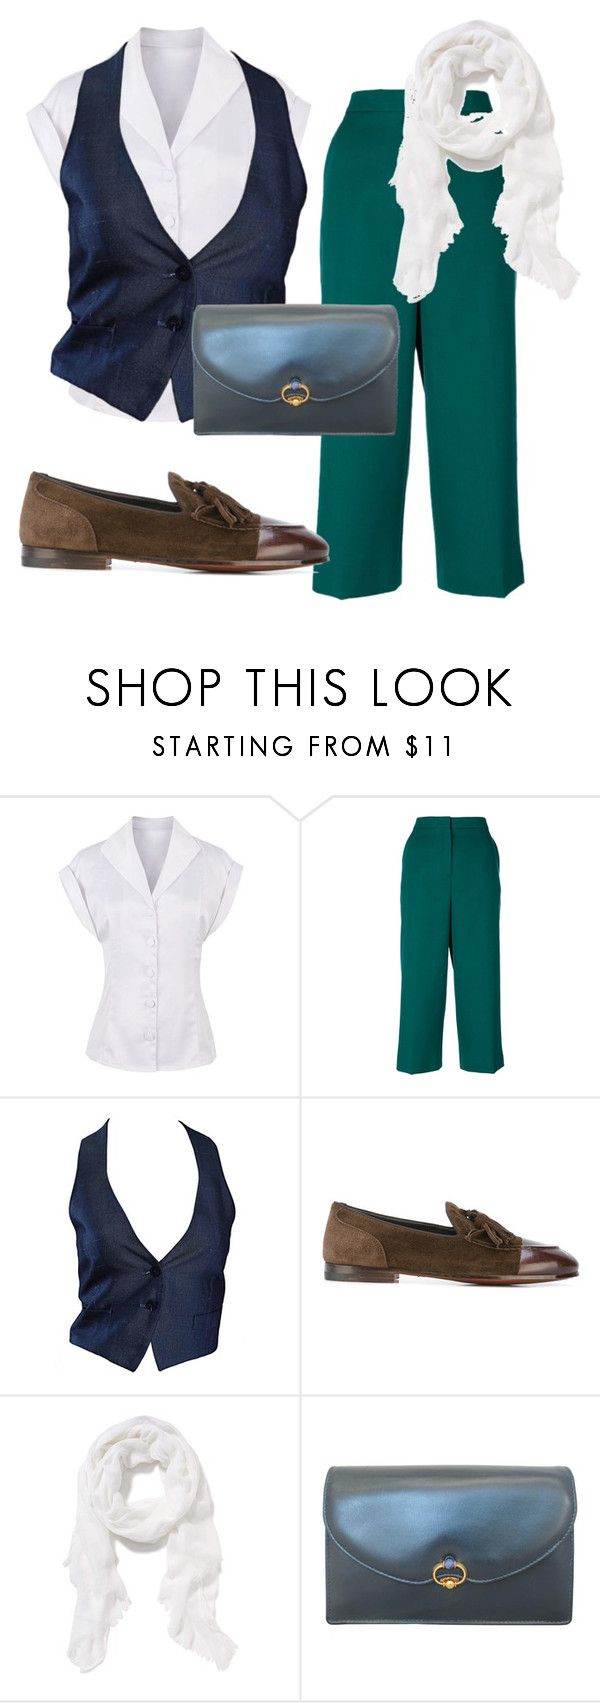 """Sophisticate"" by missmygreenhair ❤ liked on Polyvore featuring Rochas, Romeo Gigli, Alberto Fasciani, Old Navy and Gucci"